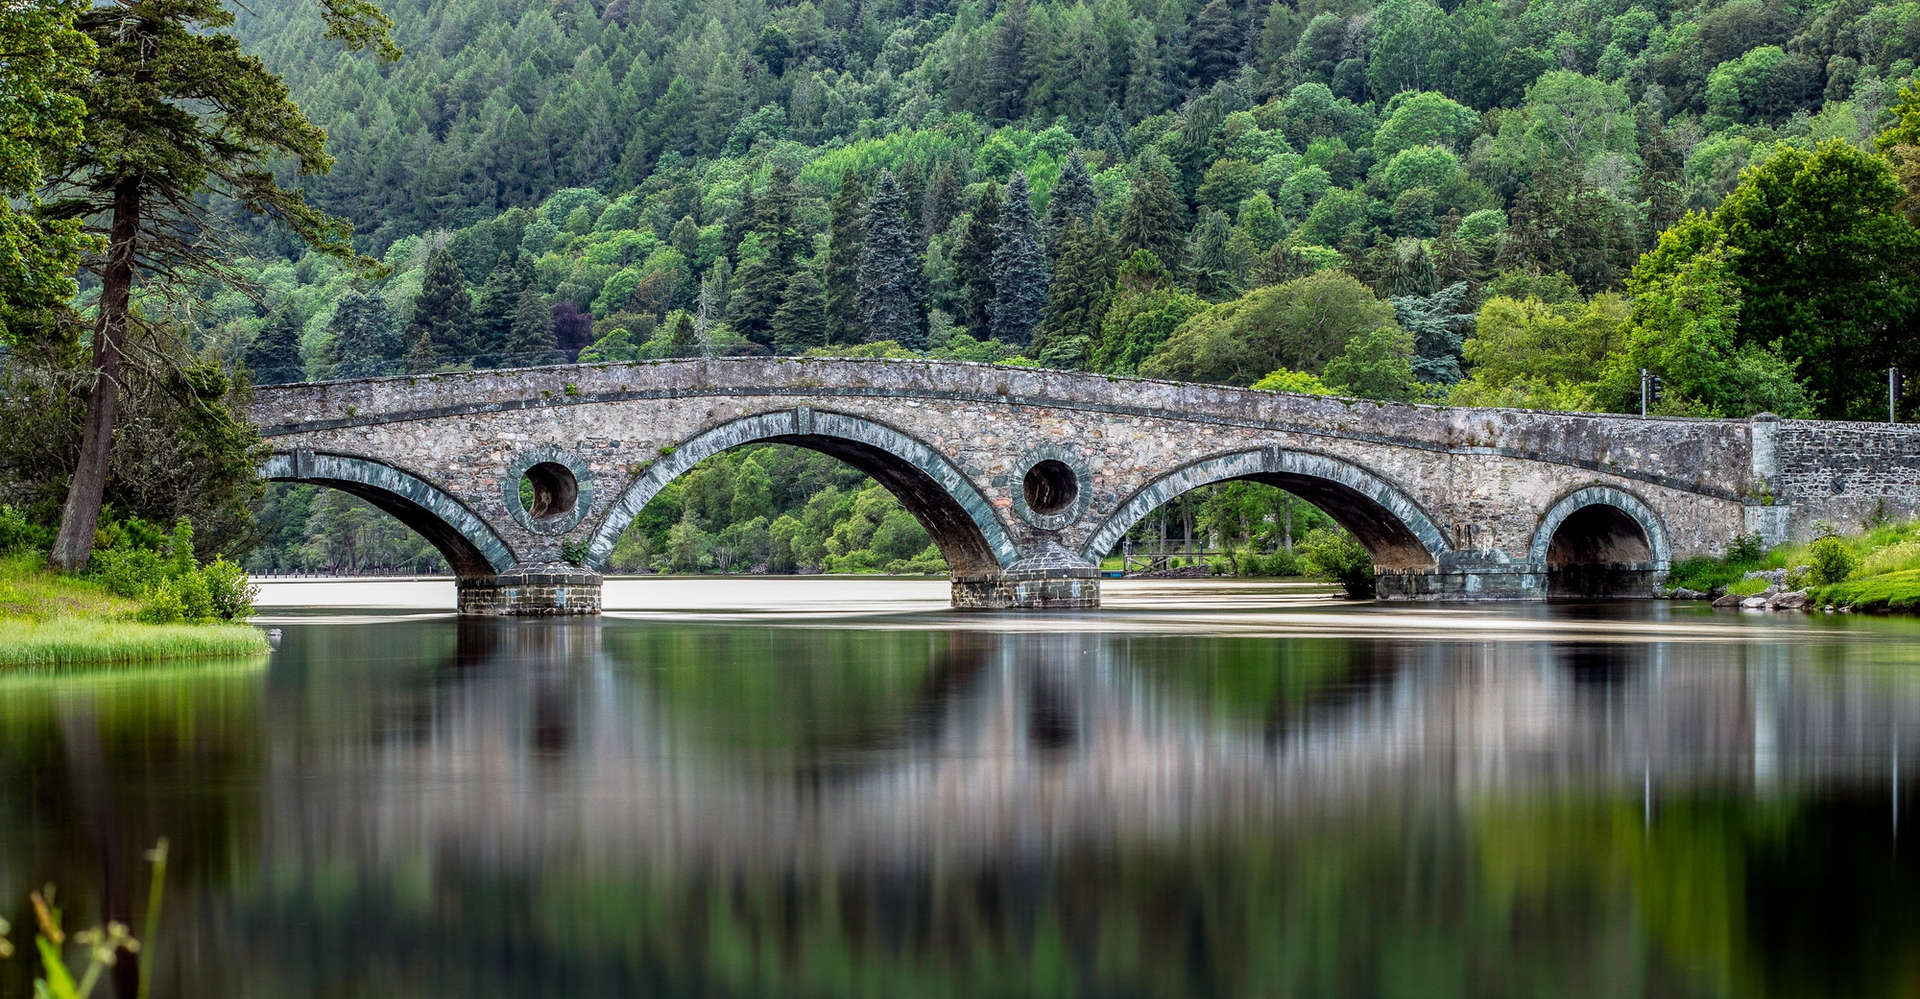 Stone Bridge over the River Tay in scotland with forest on hills in background